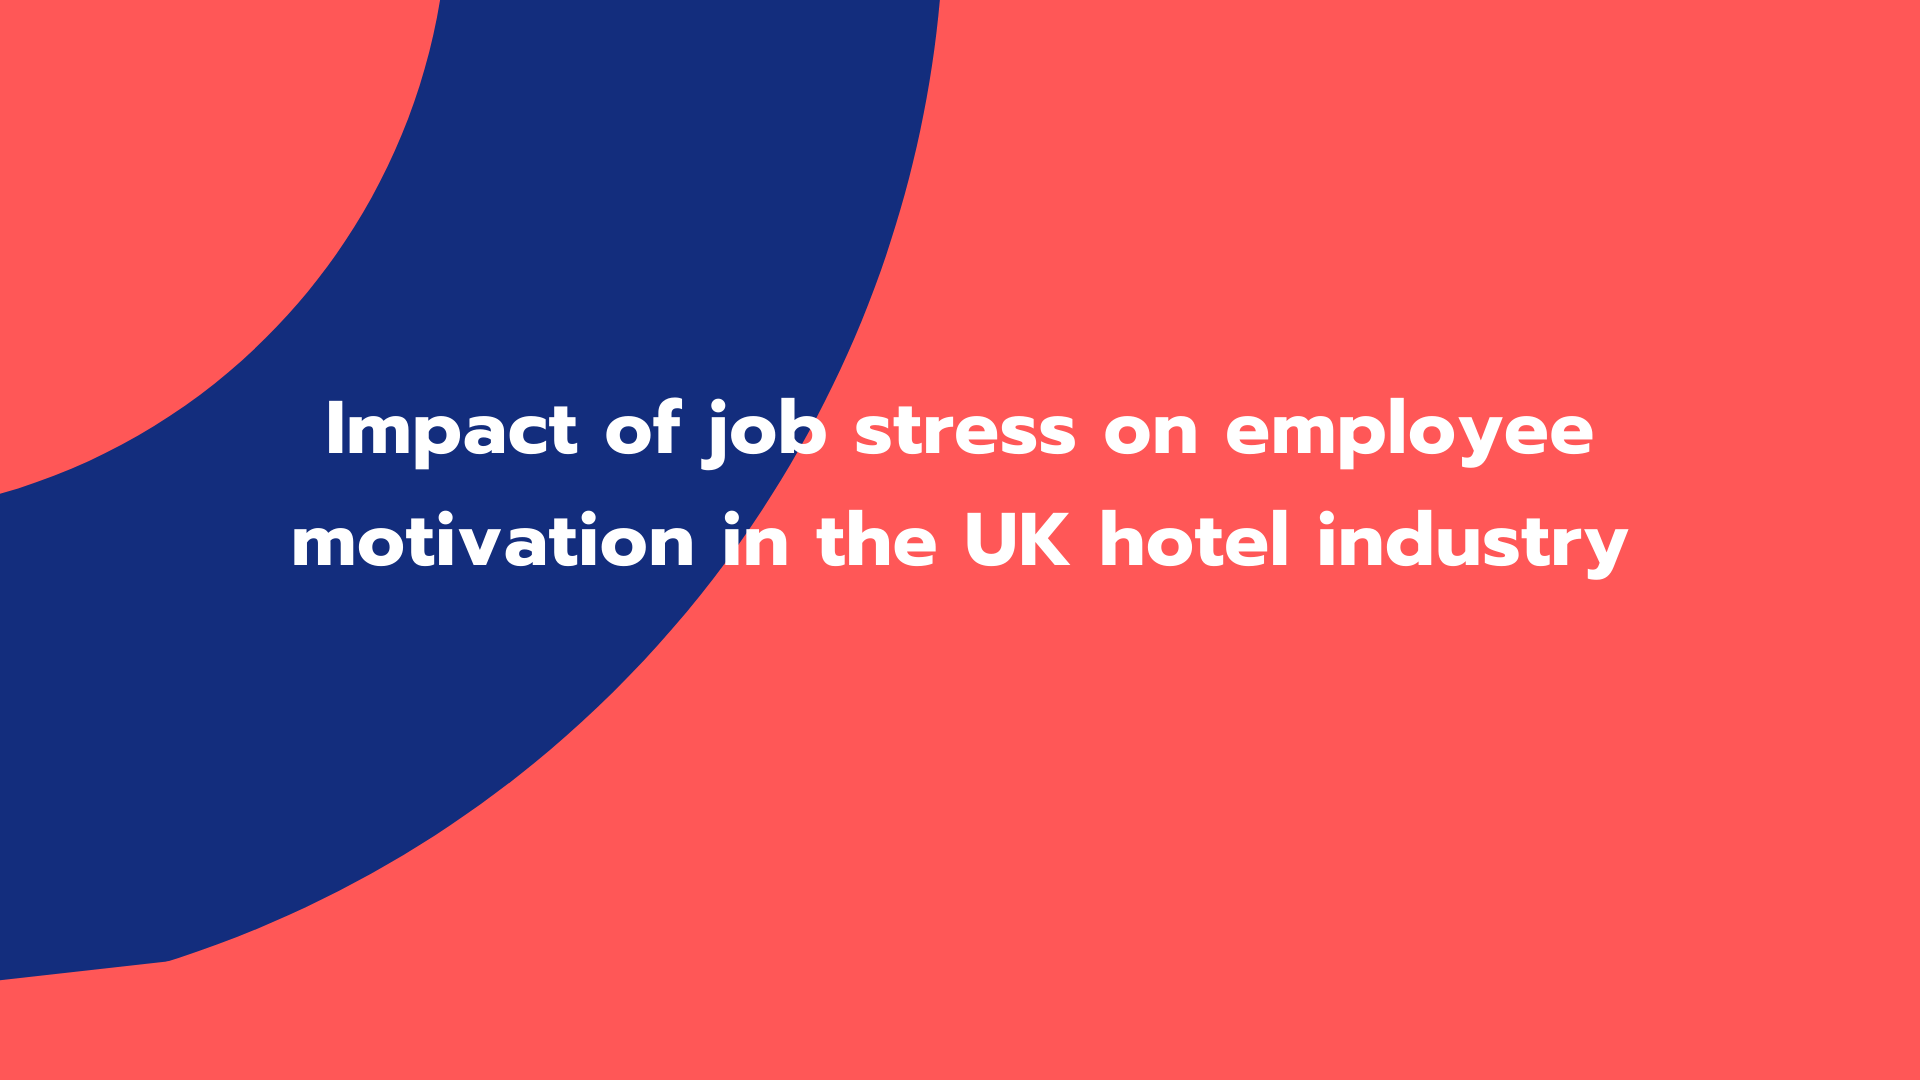 Impact of job stress on employee motivation in the UK hotel industry